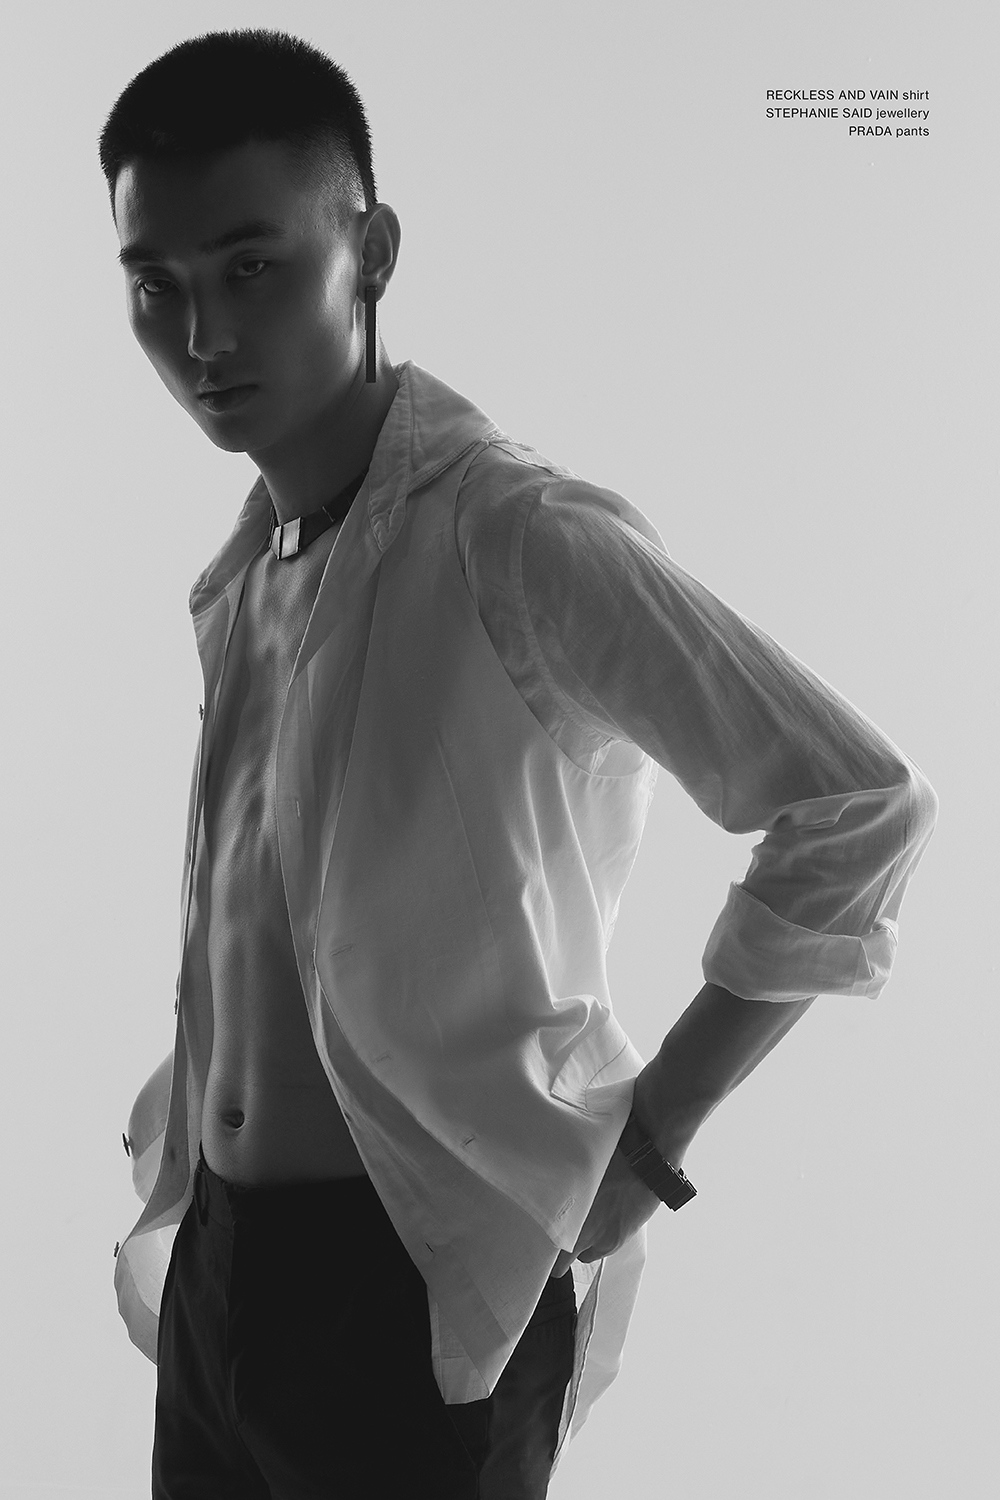 Bozhen wearing Prada, Reckless & Vain and Stephanie Said jewellery for Astrophe Homme fashion editorial by Aaron VIII